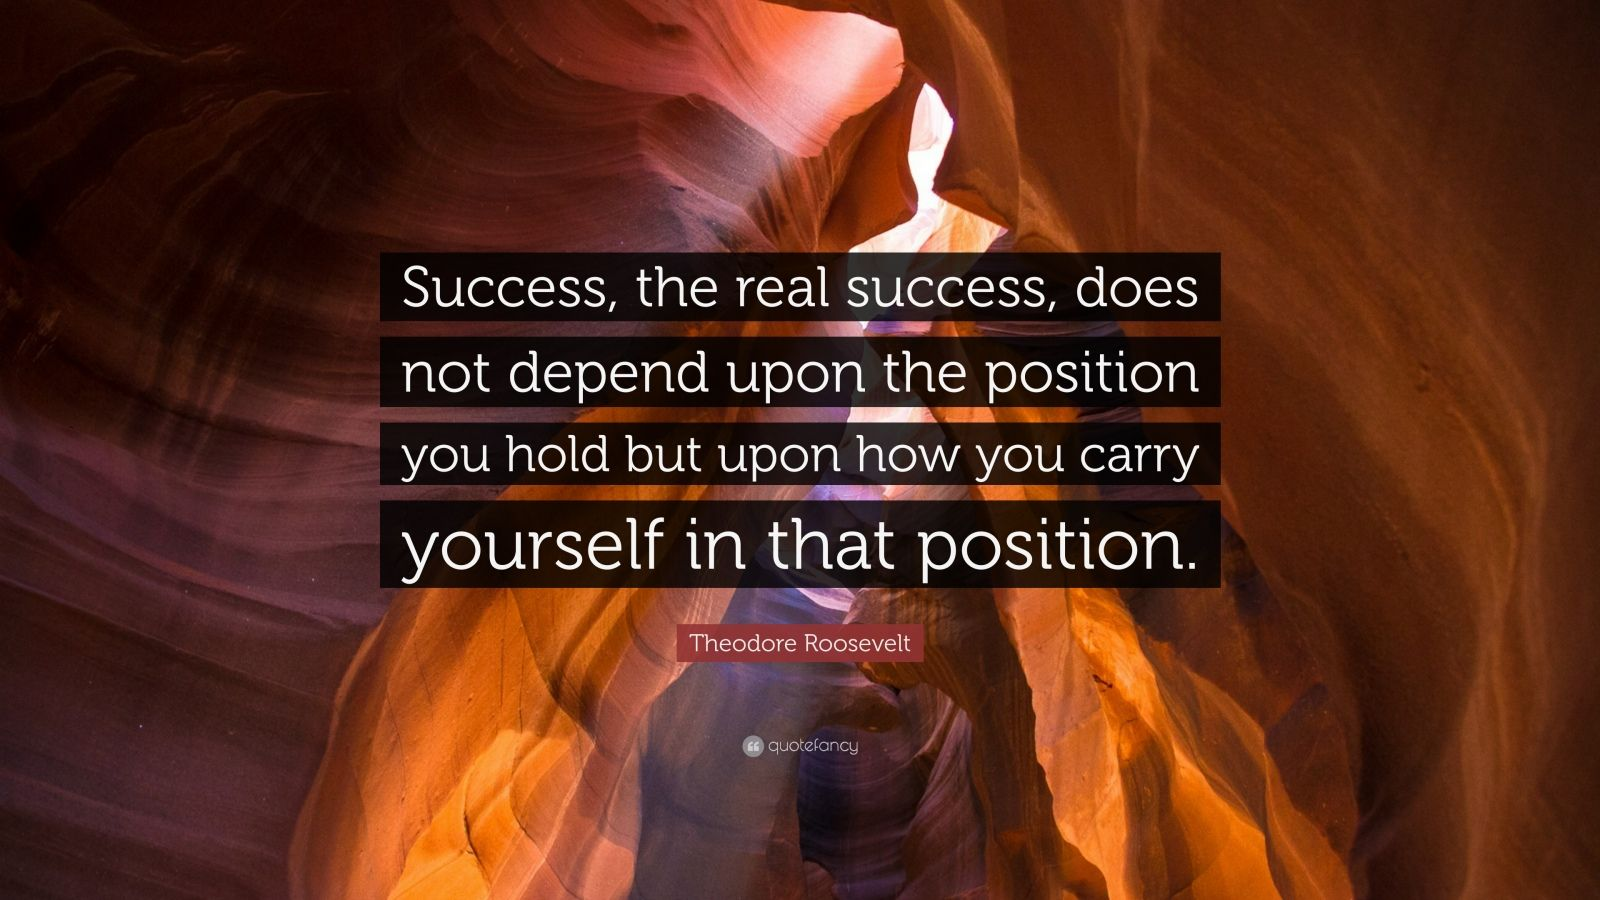 """Theodore Roosevelt Quote: """"Success, the real success, does not depend upon the position you hold but upon how you carry yourself in that position."""""""